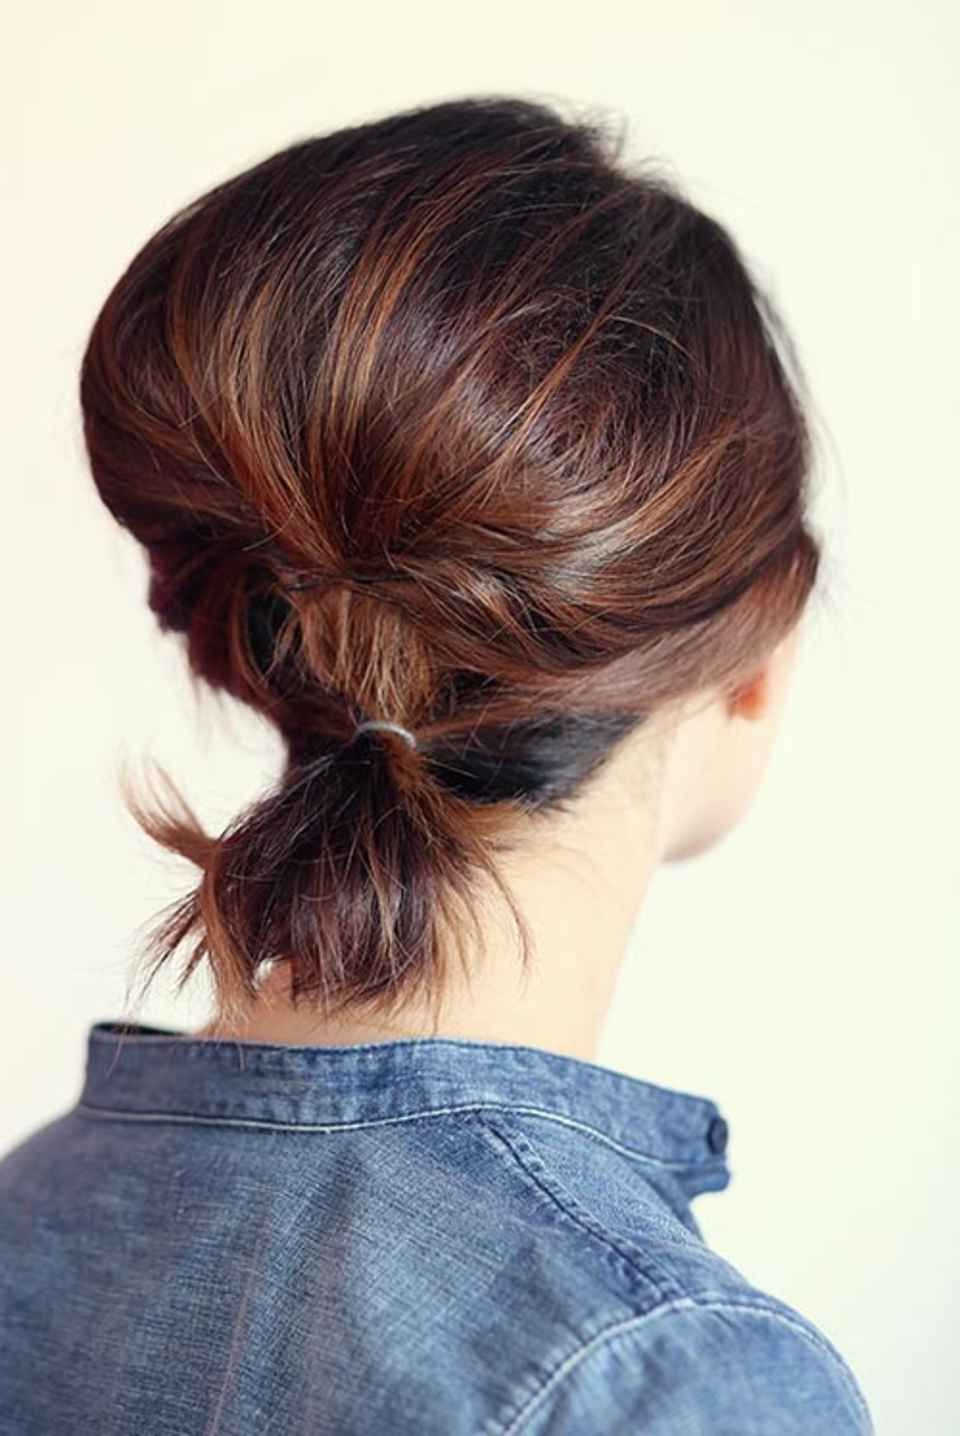 Cool Updo Hairstyles For Women With Short Hair | Hair | Pinterest Intended For Teased Short Hairstyles (View 23 of 25)